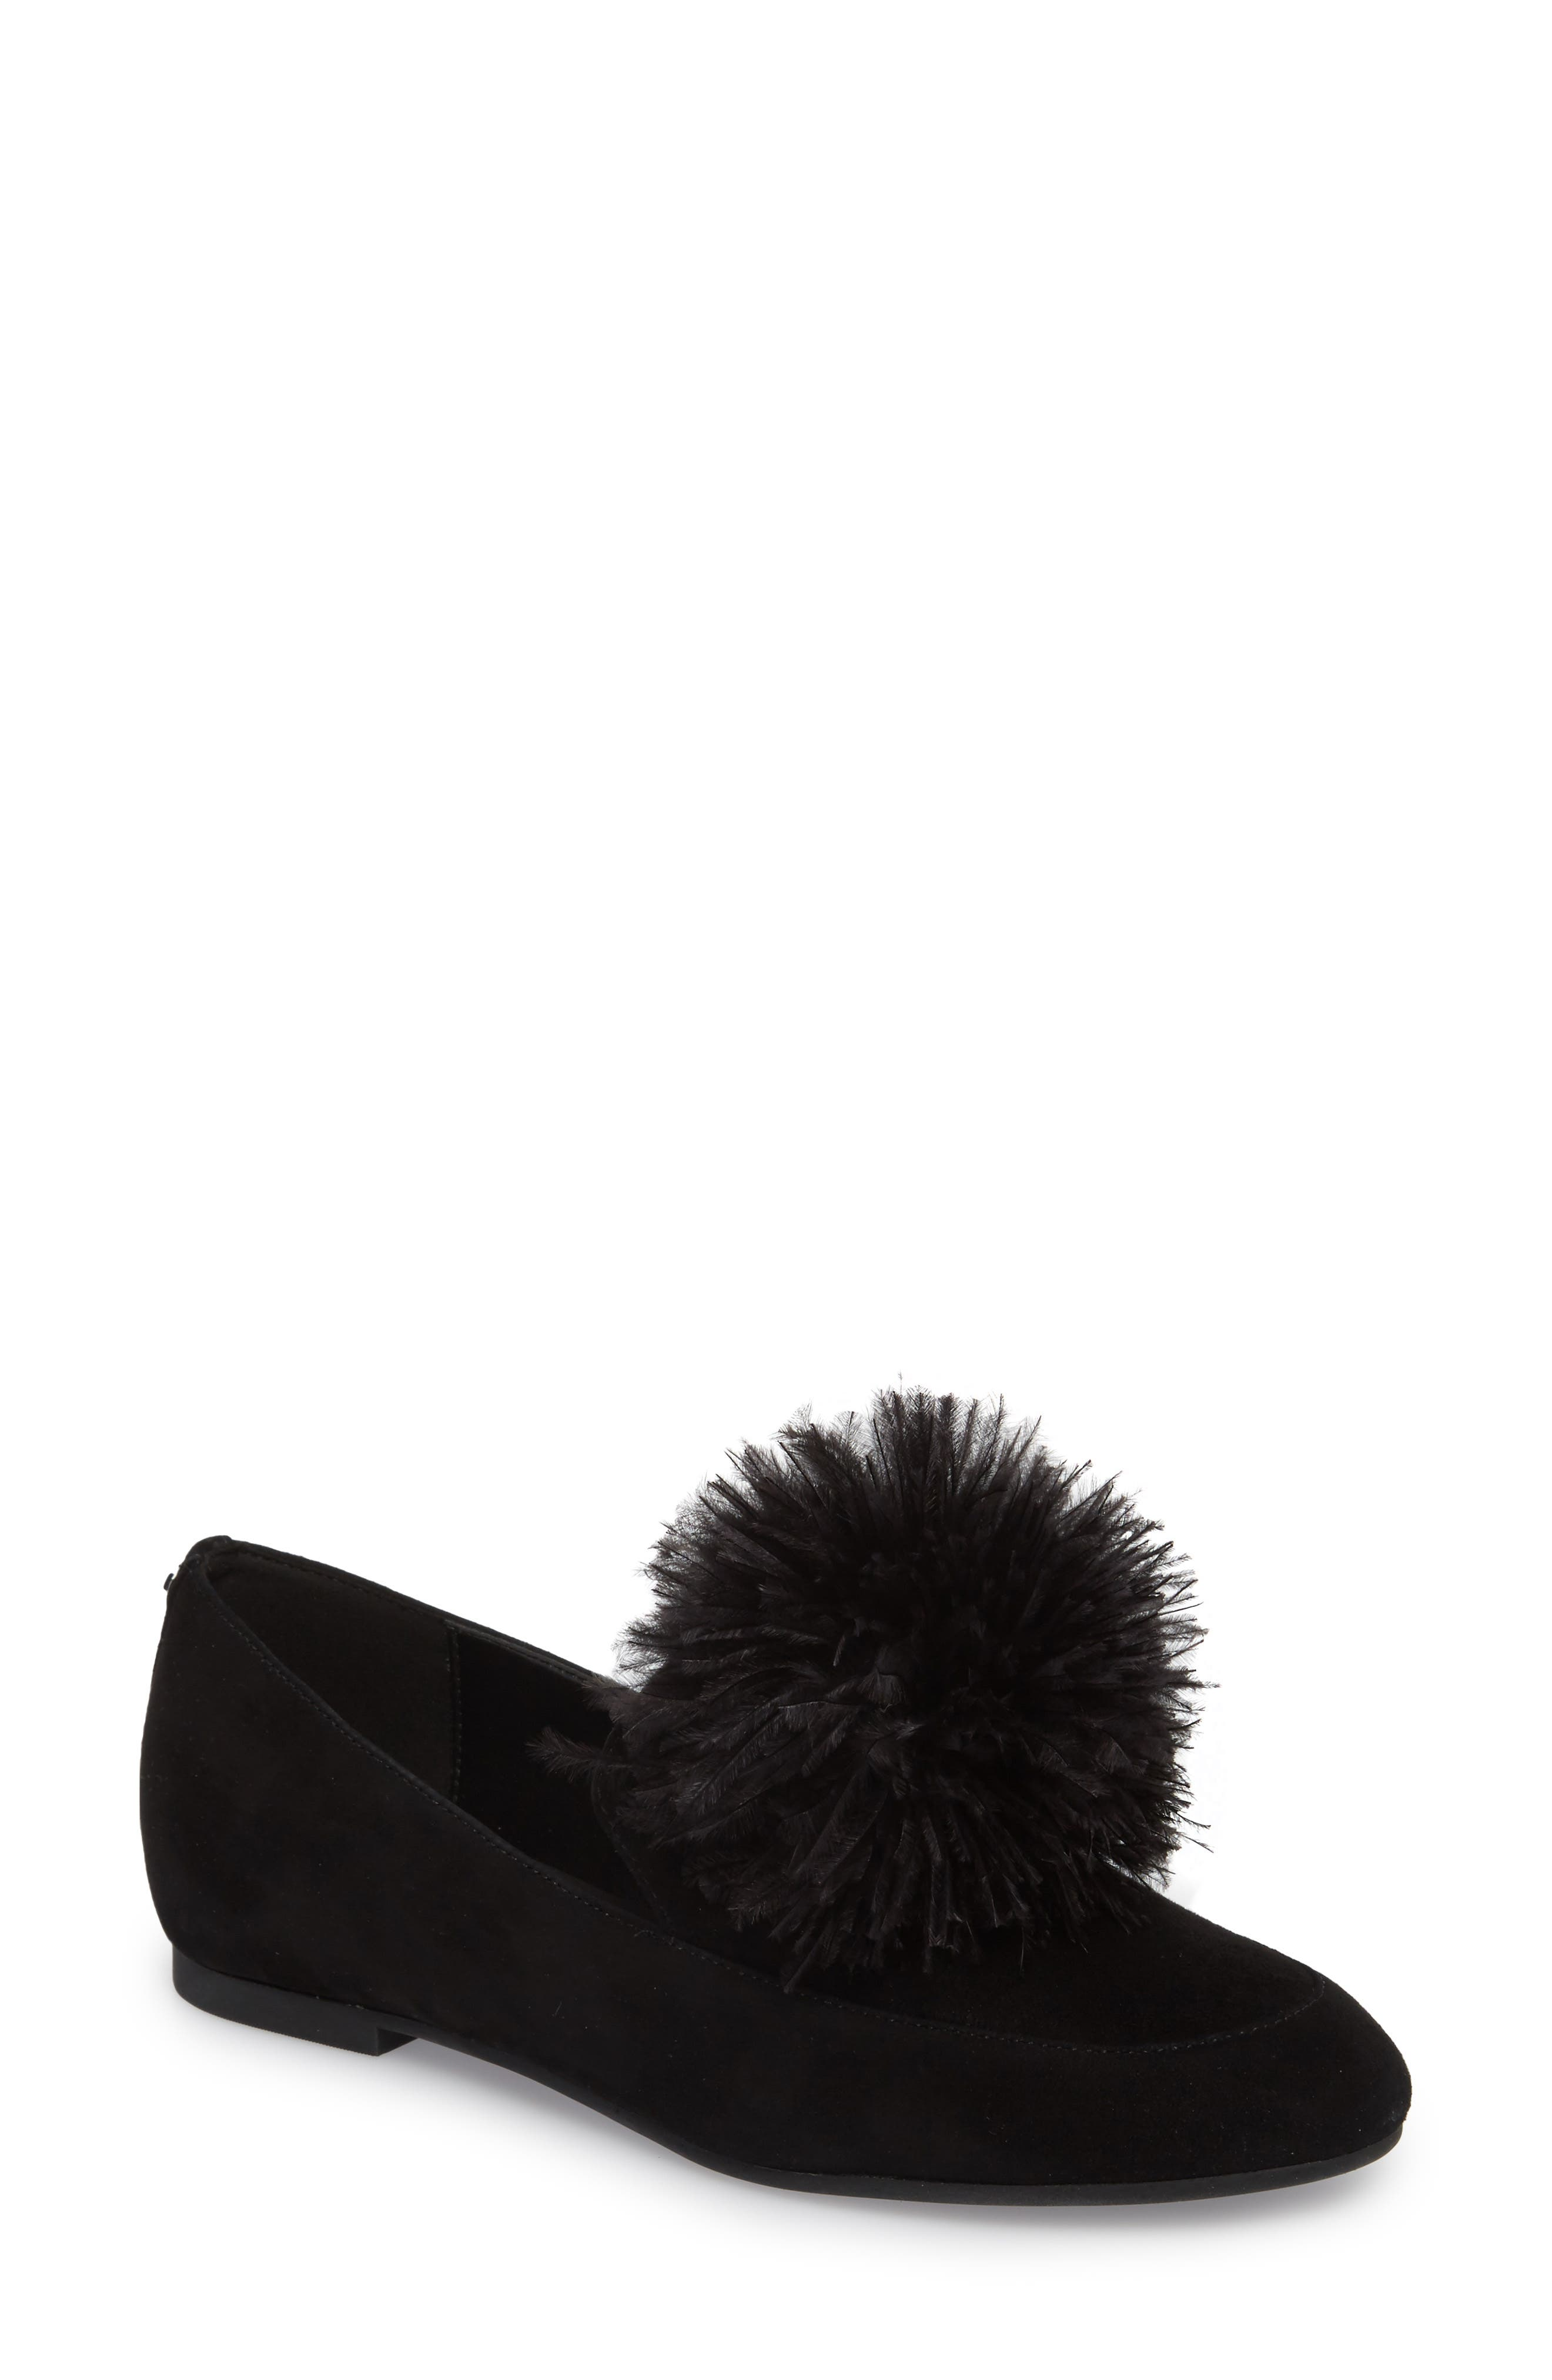 Fara Feather Pom Loafer,                             Main thumbnail 1, color,                             001